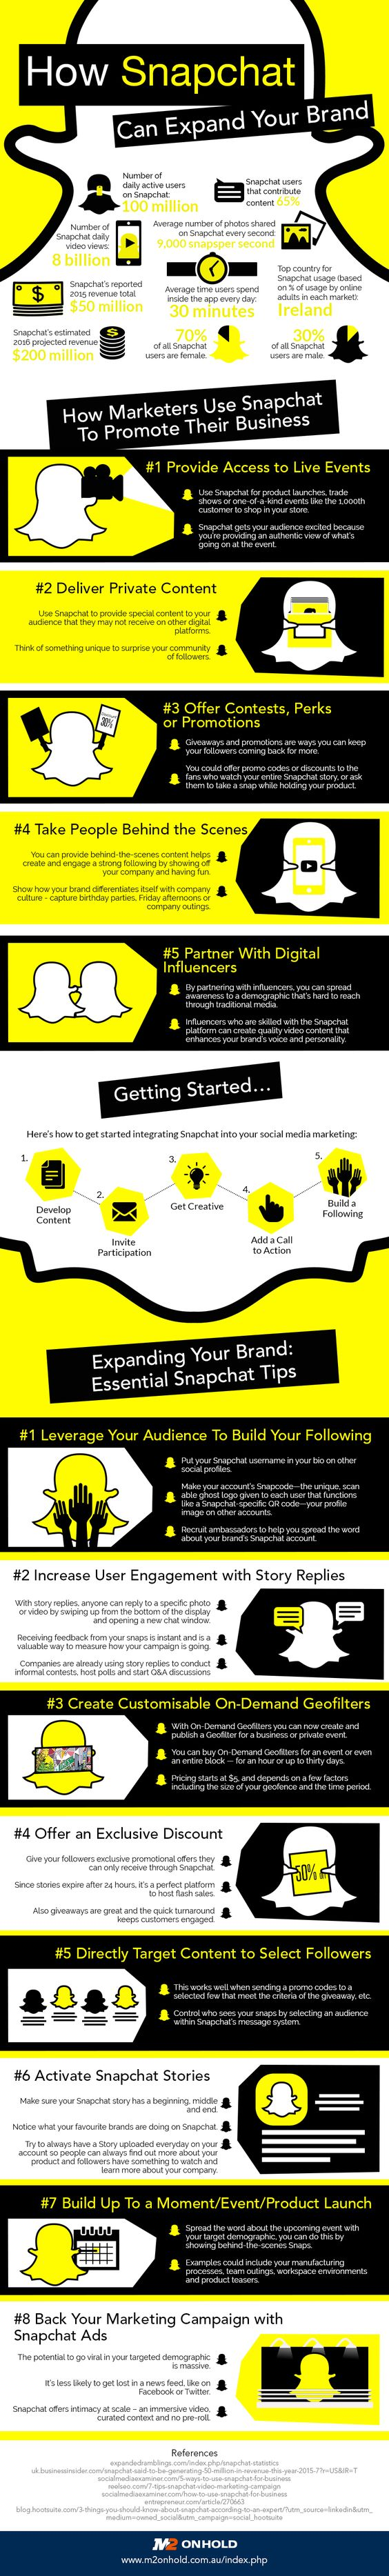 how-snapchat-can-affect-your-brand